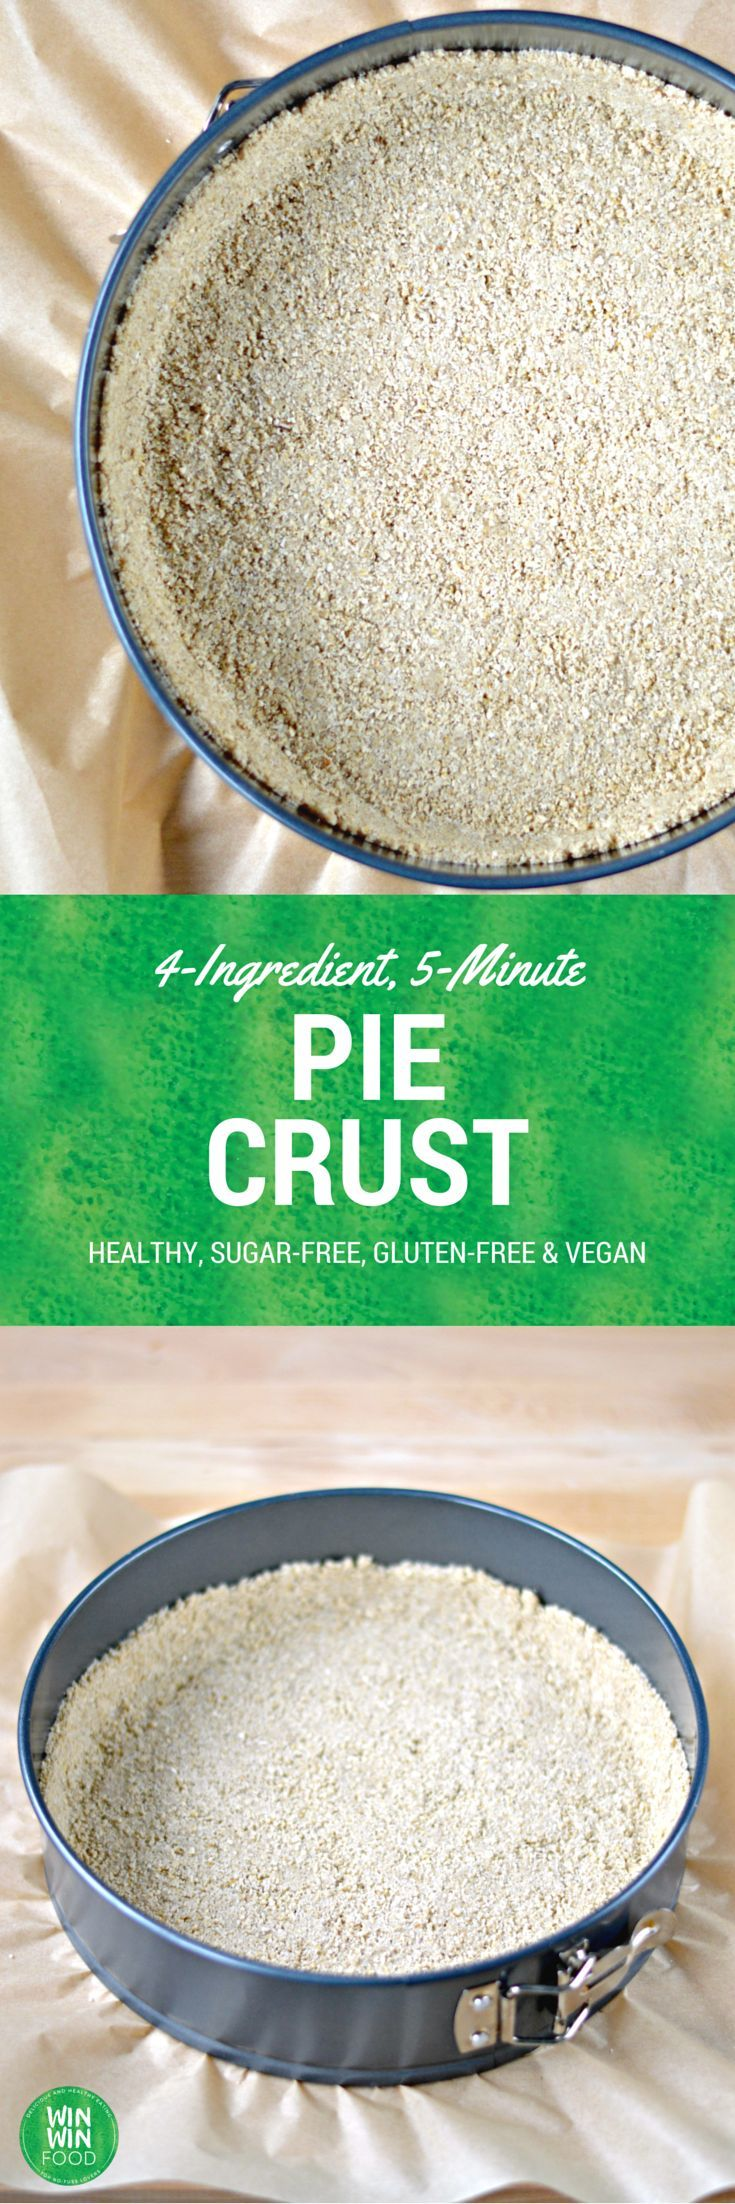 4-Ingredient, 5-Minute, #Healthy, #GlutenFree & #Vegan Pie Crust | WIN-WINFOOD.com